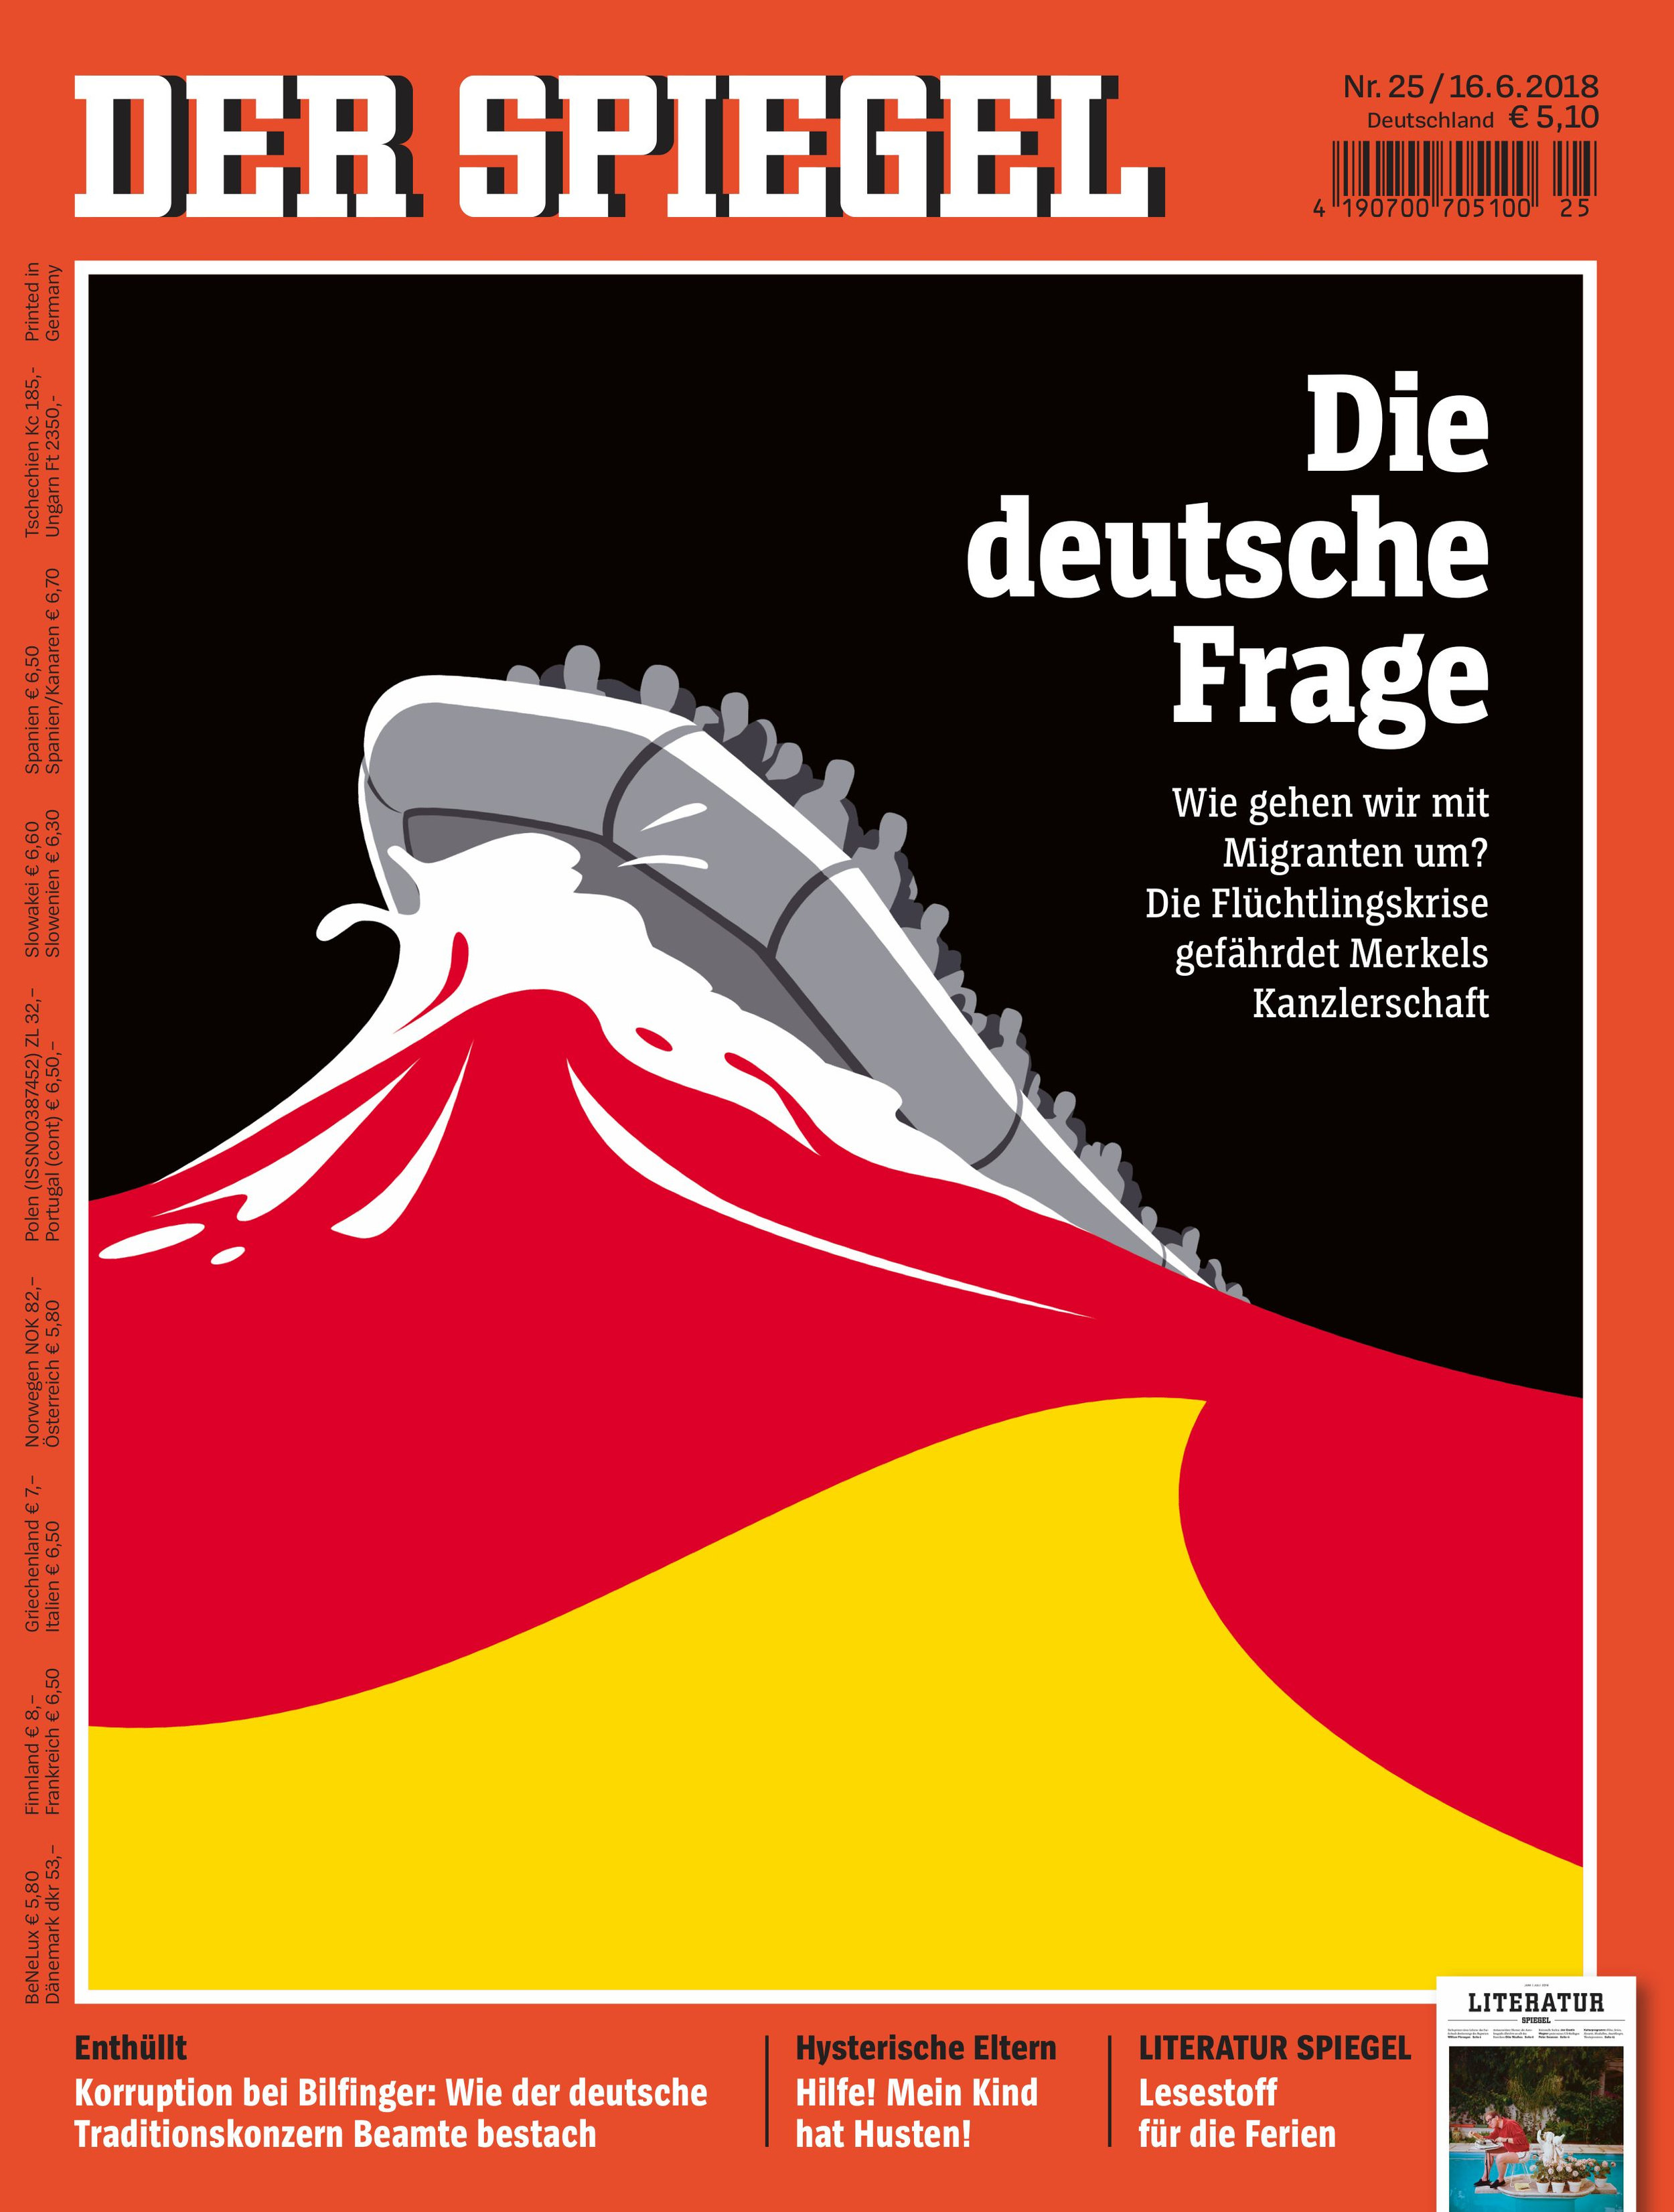 Spiegel 24 3 Consecutive Covers For Der Spiegel Lennart Gäbel Illustration